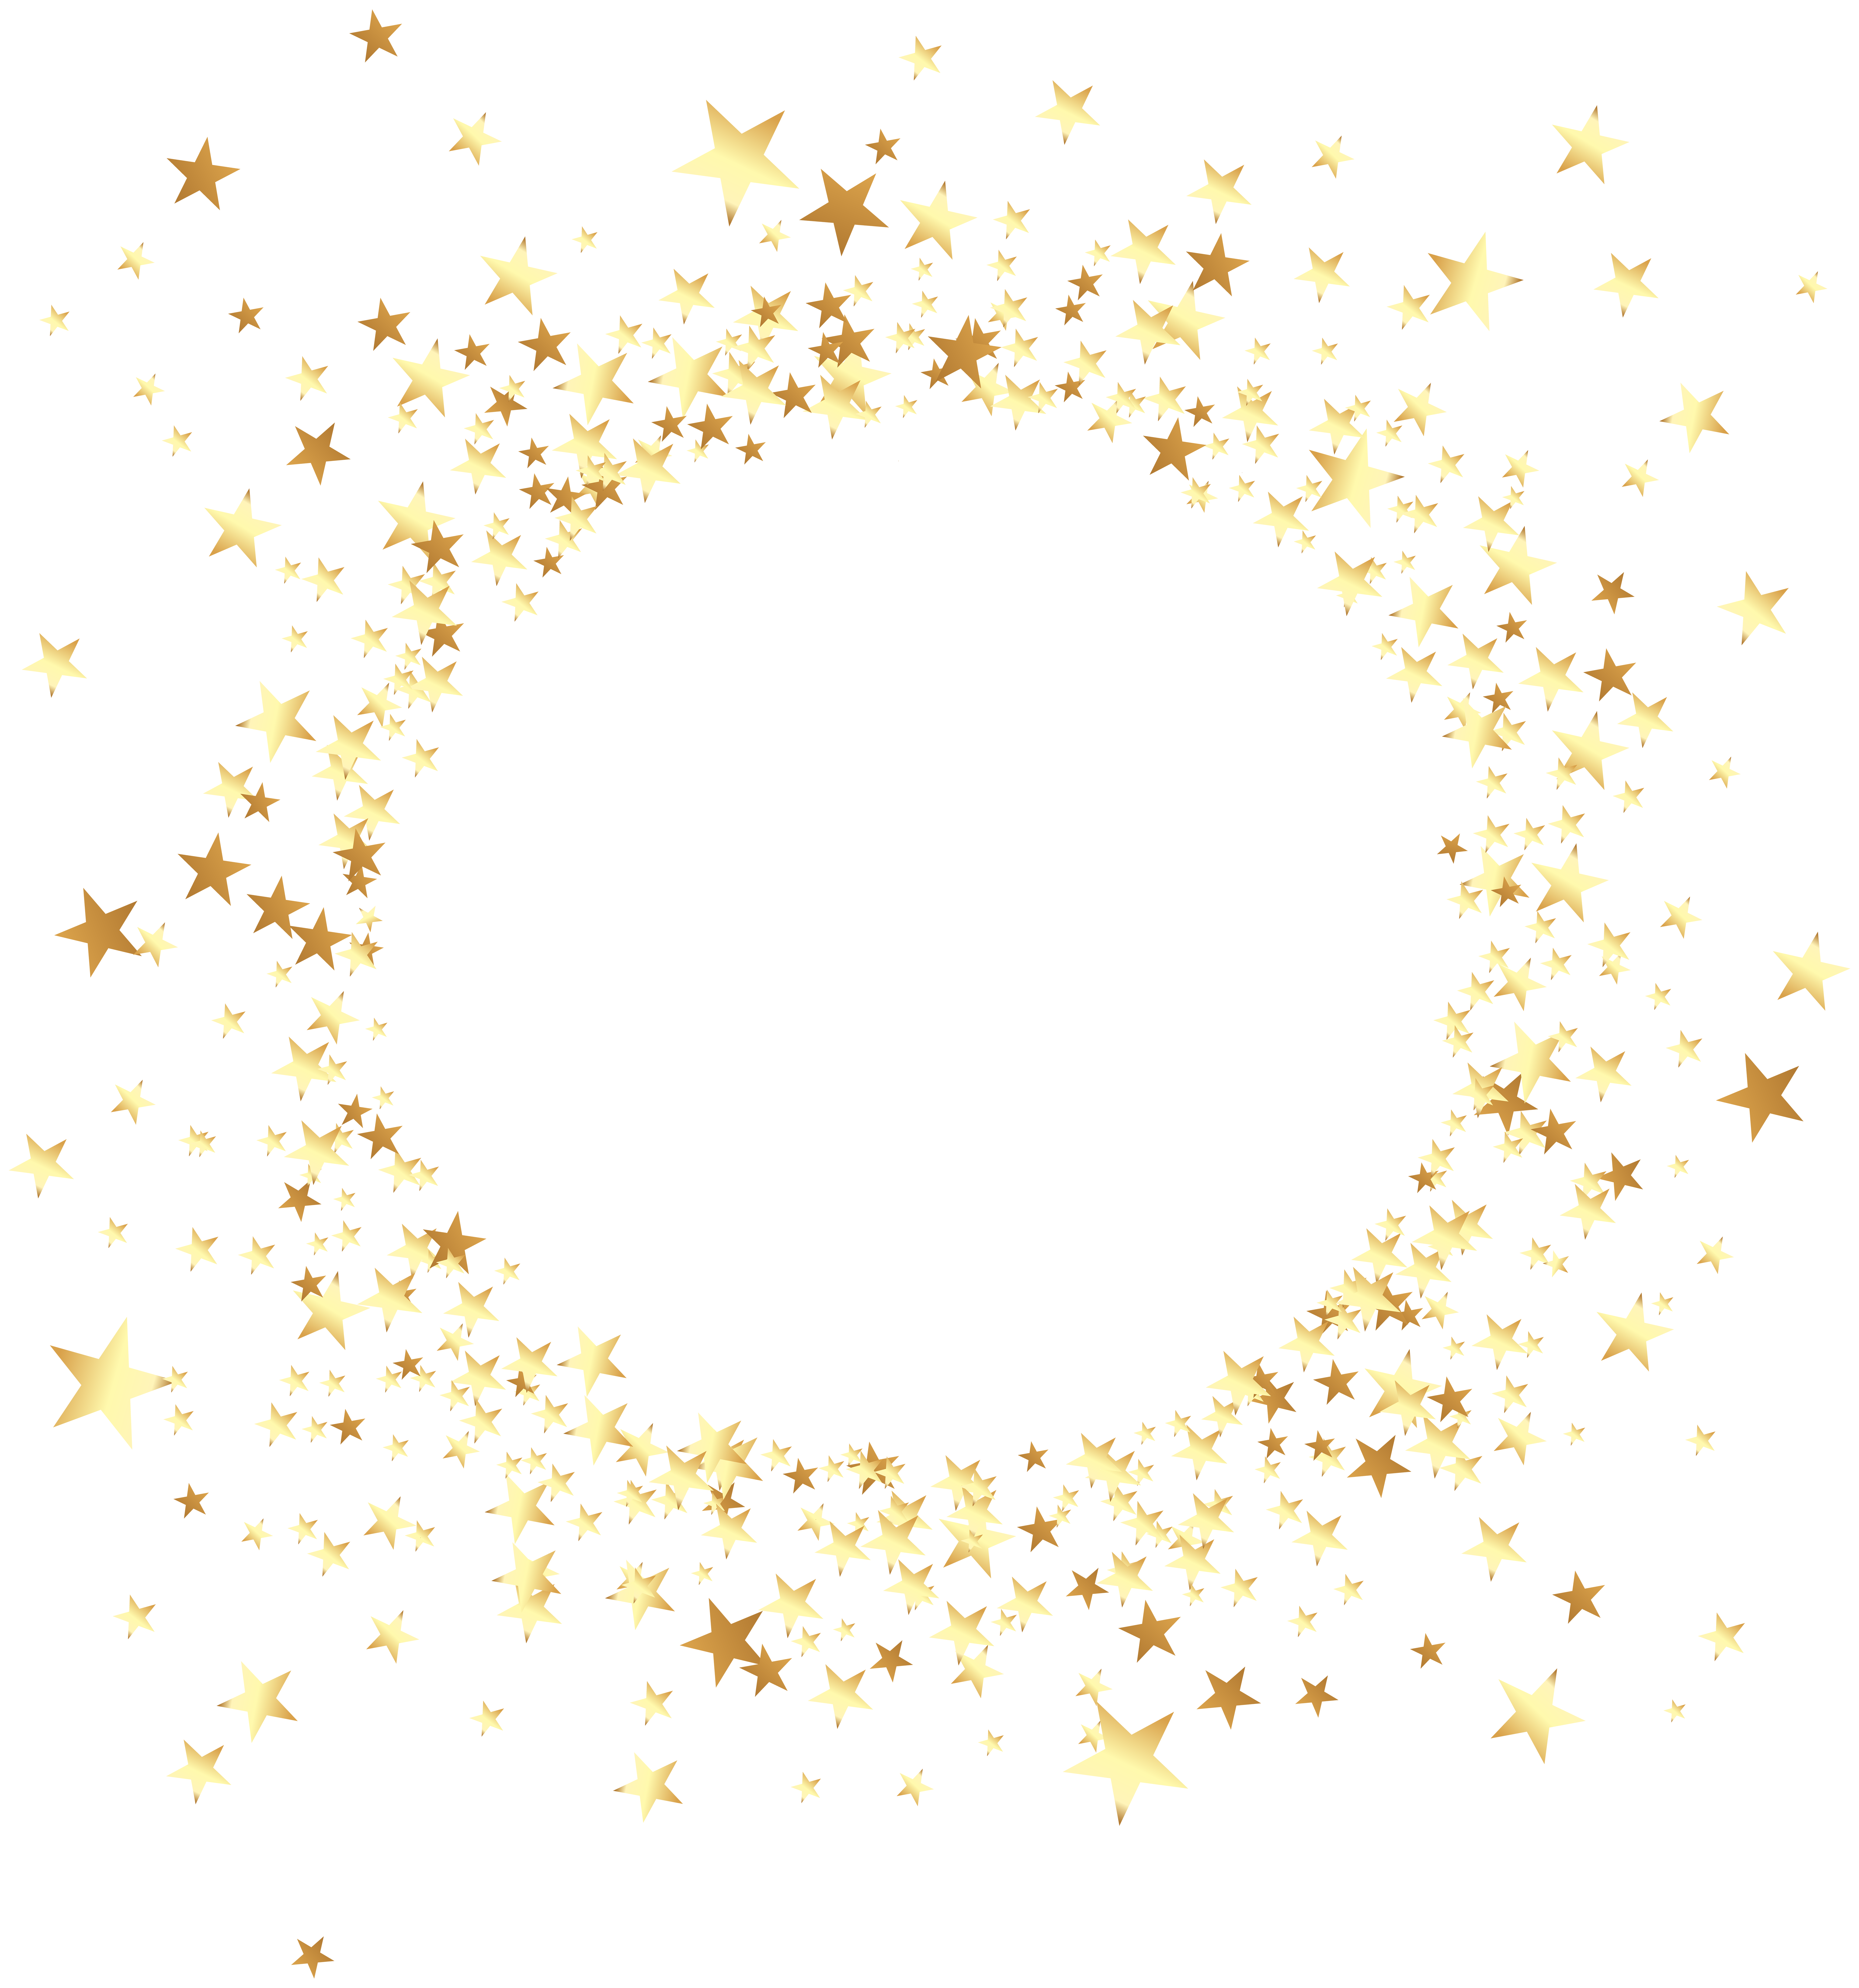 Star wallpaper clipart jpg freeuse Decorative Round Element with Stars Transparent Clip Art | Gallery ... jpg freeuse